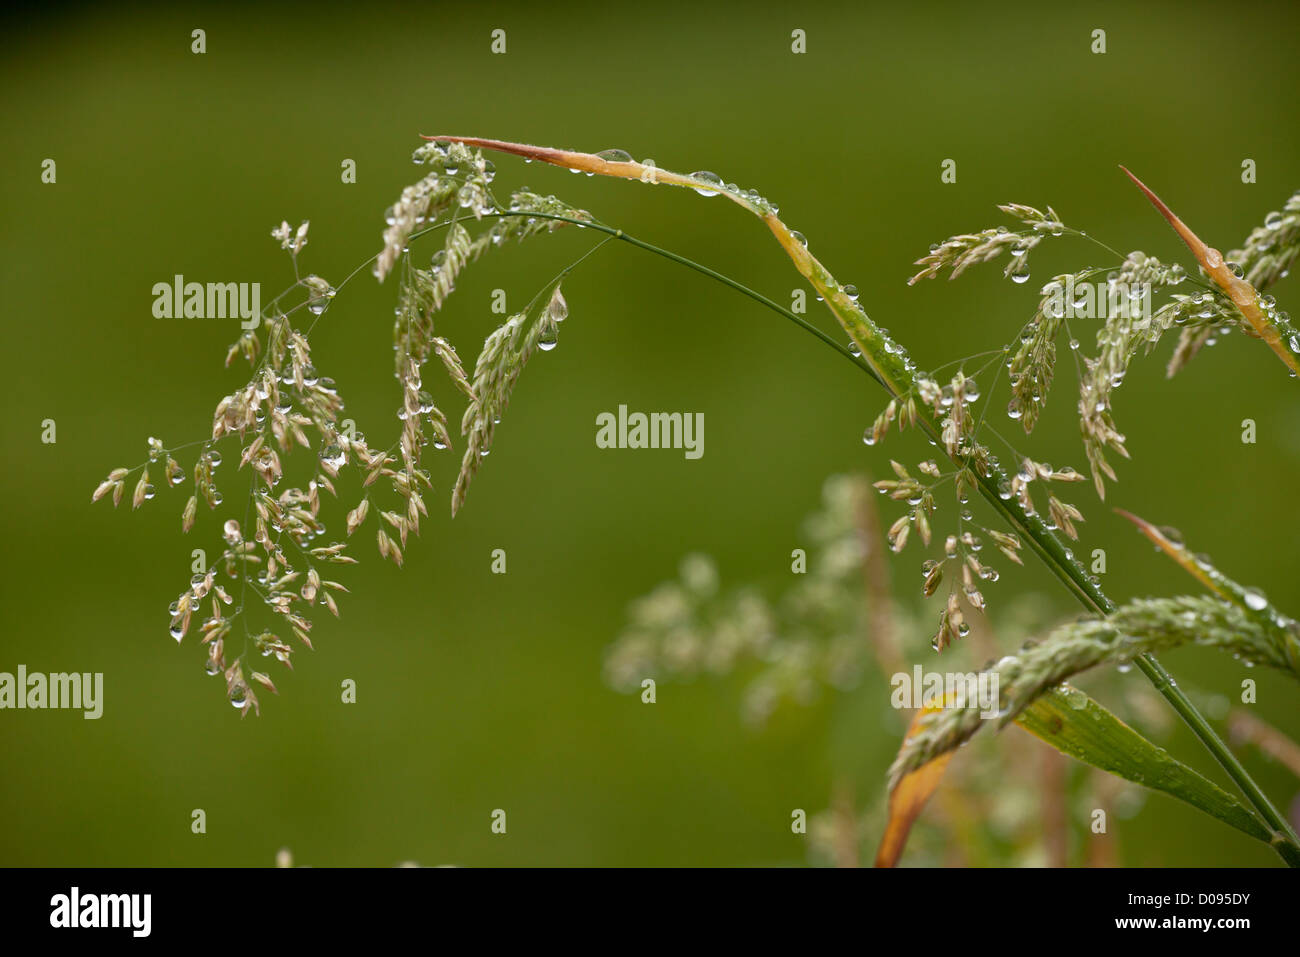 Grasses, mainly Yorkshire-fog (Holcus lanatus) in flower after rain, close-up, in summertime Stock Photo